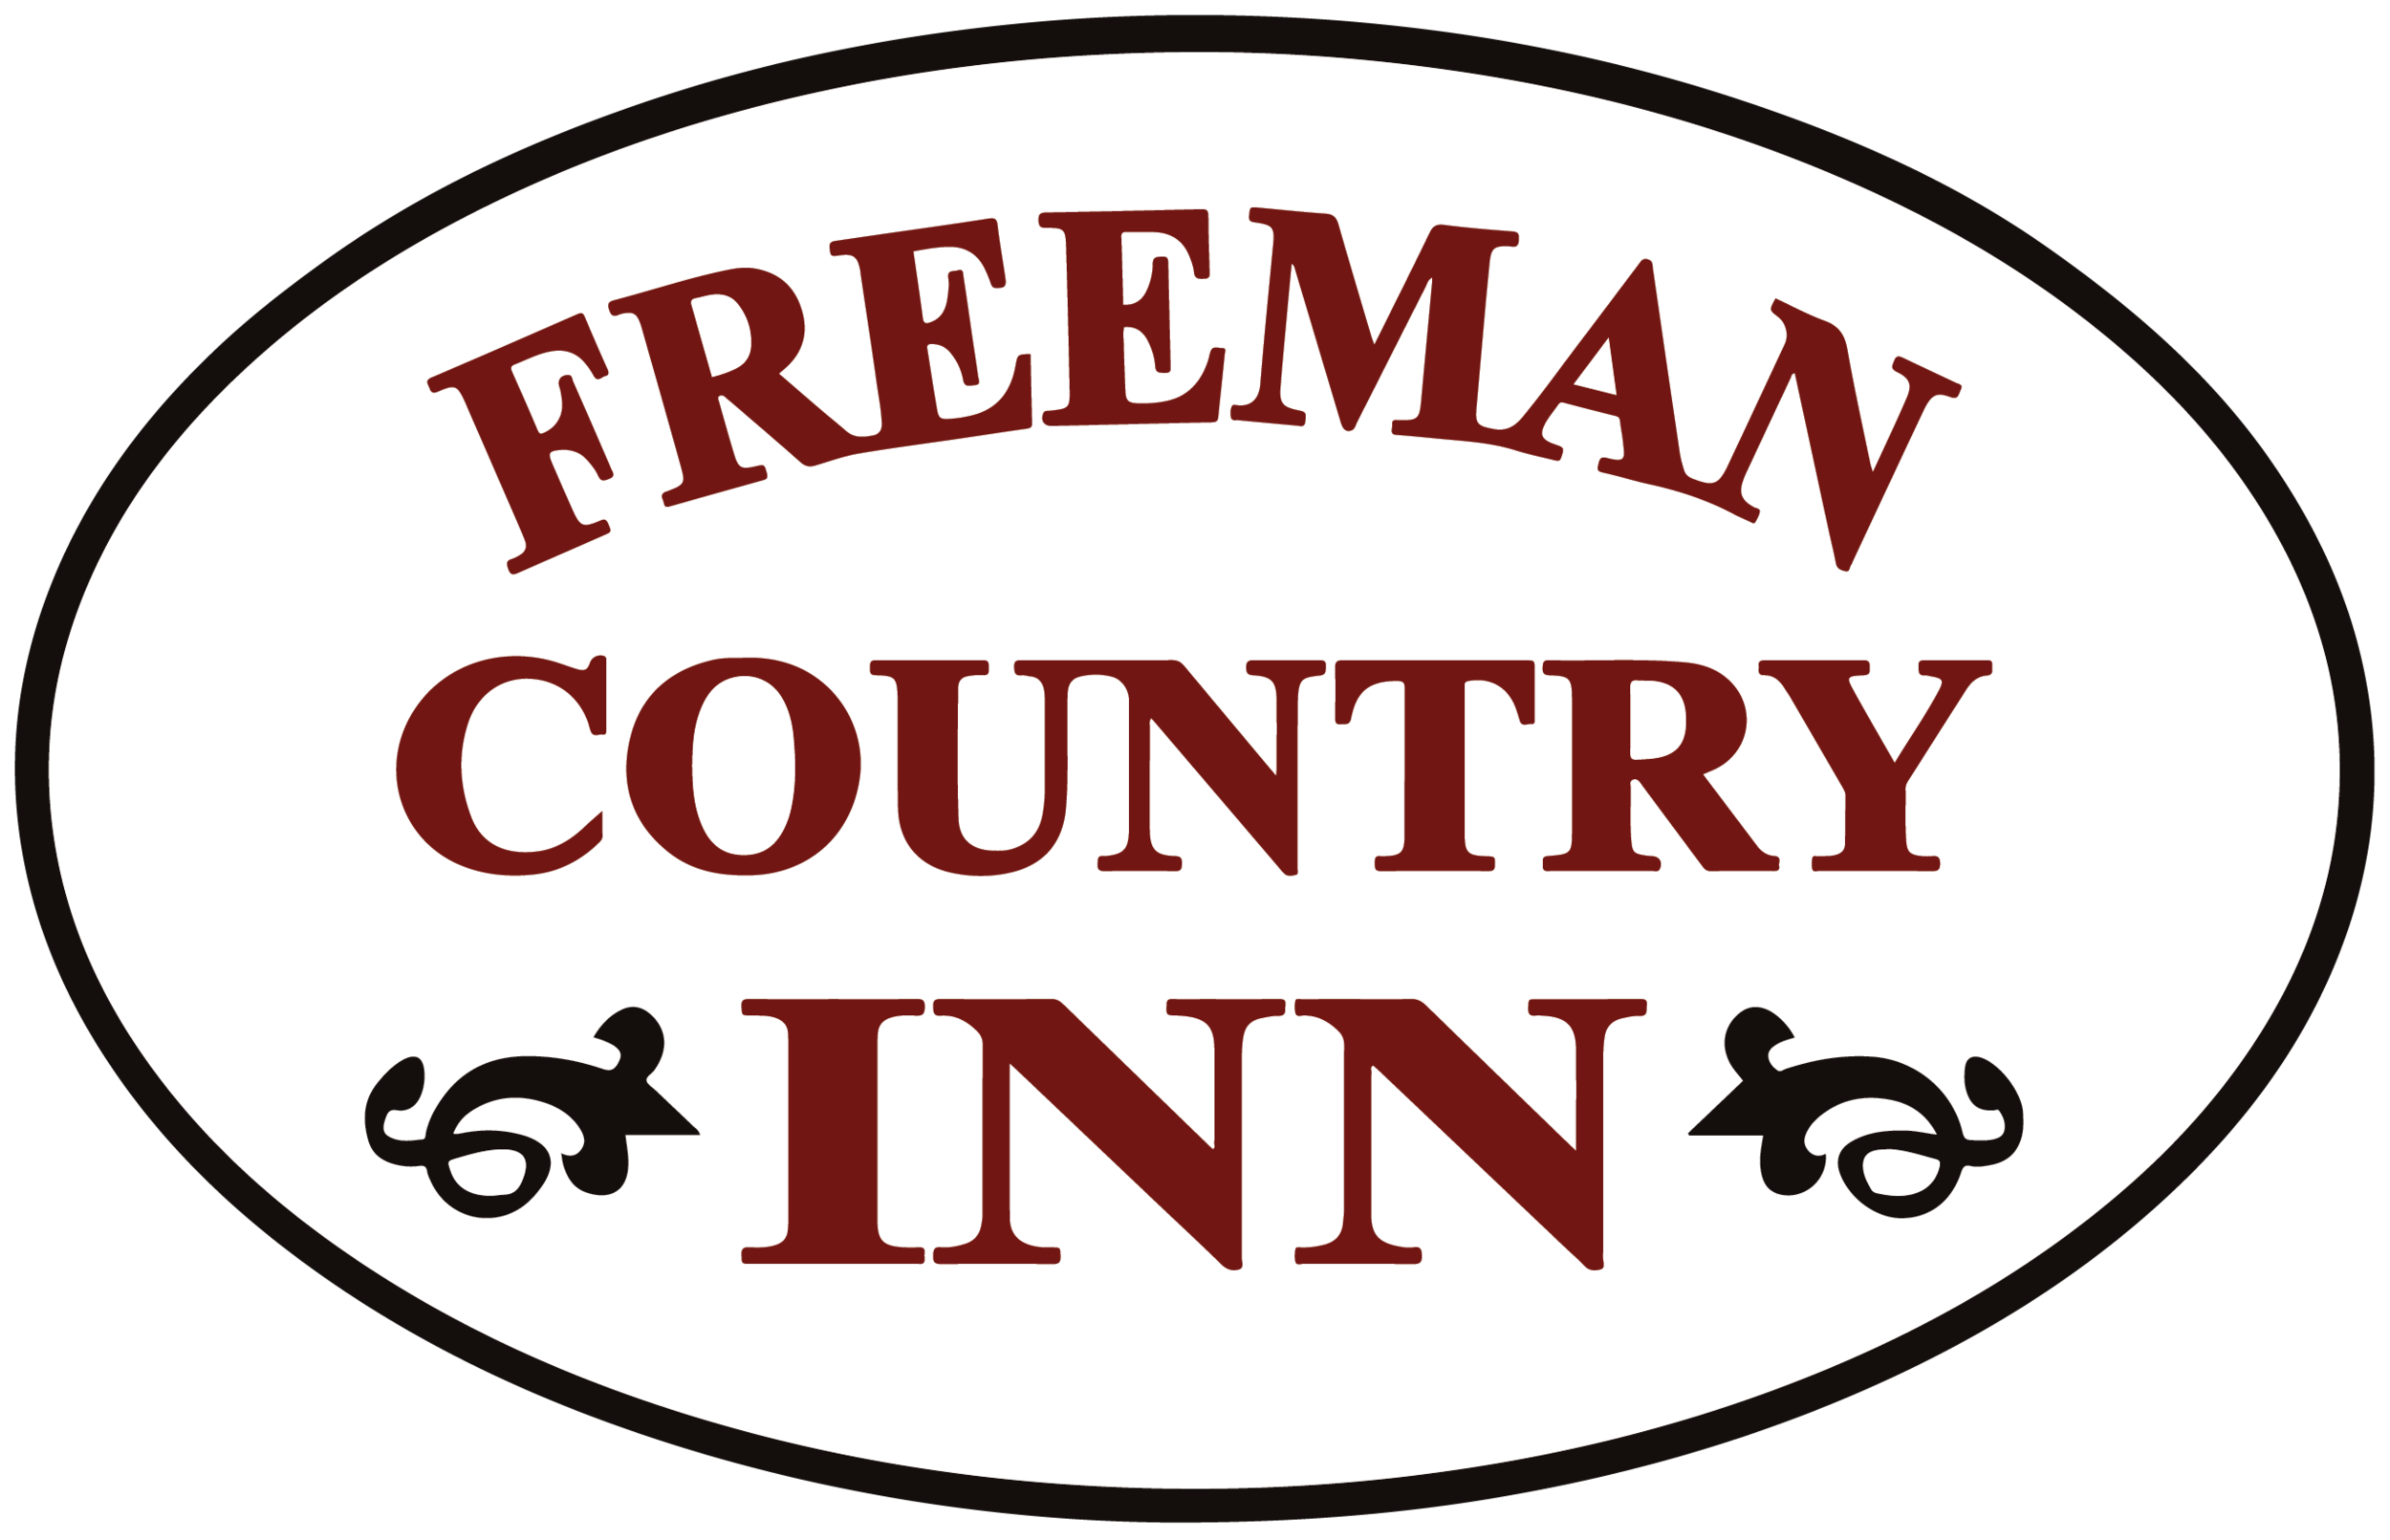 freeman country inn-01.png